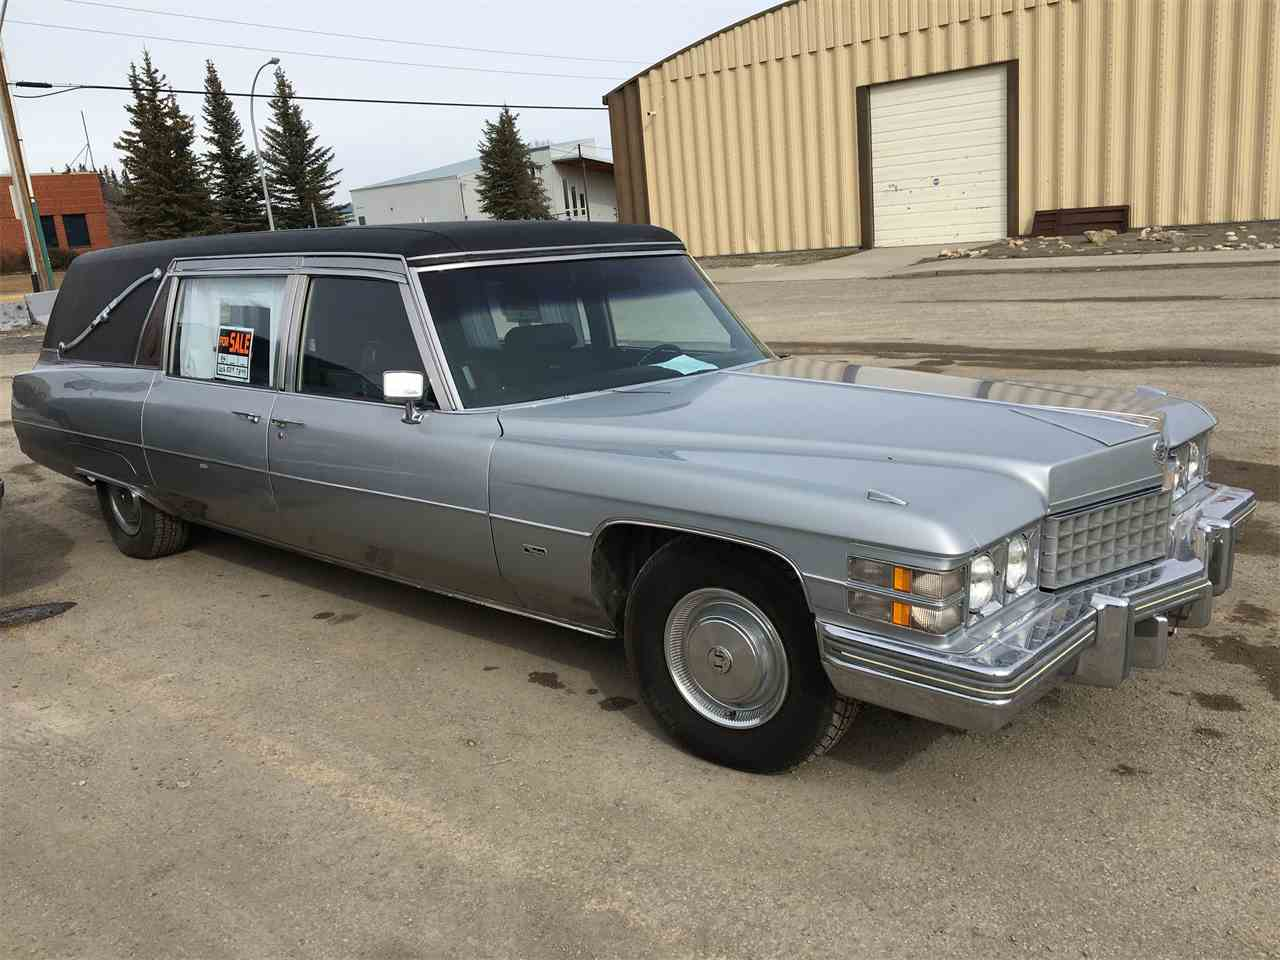 at this dying you sale how a could turn for look buy with potentially cadilla be have would to hearse car cadillac out